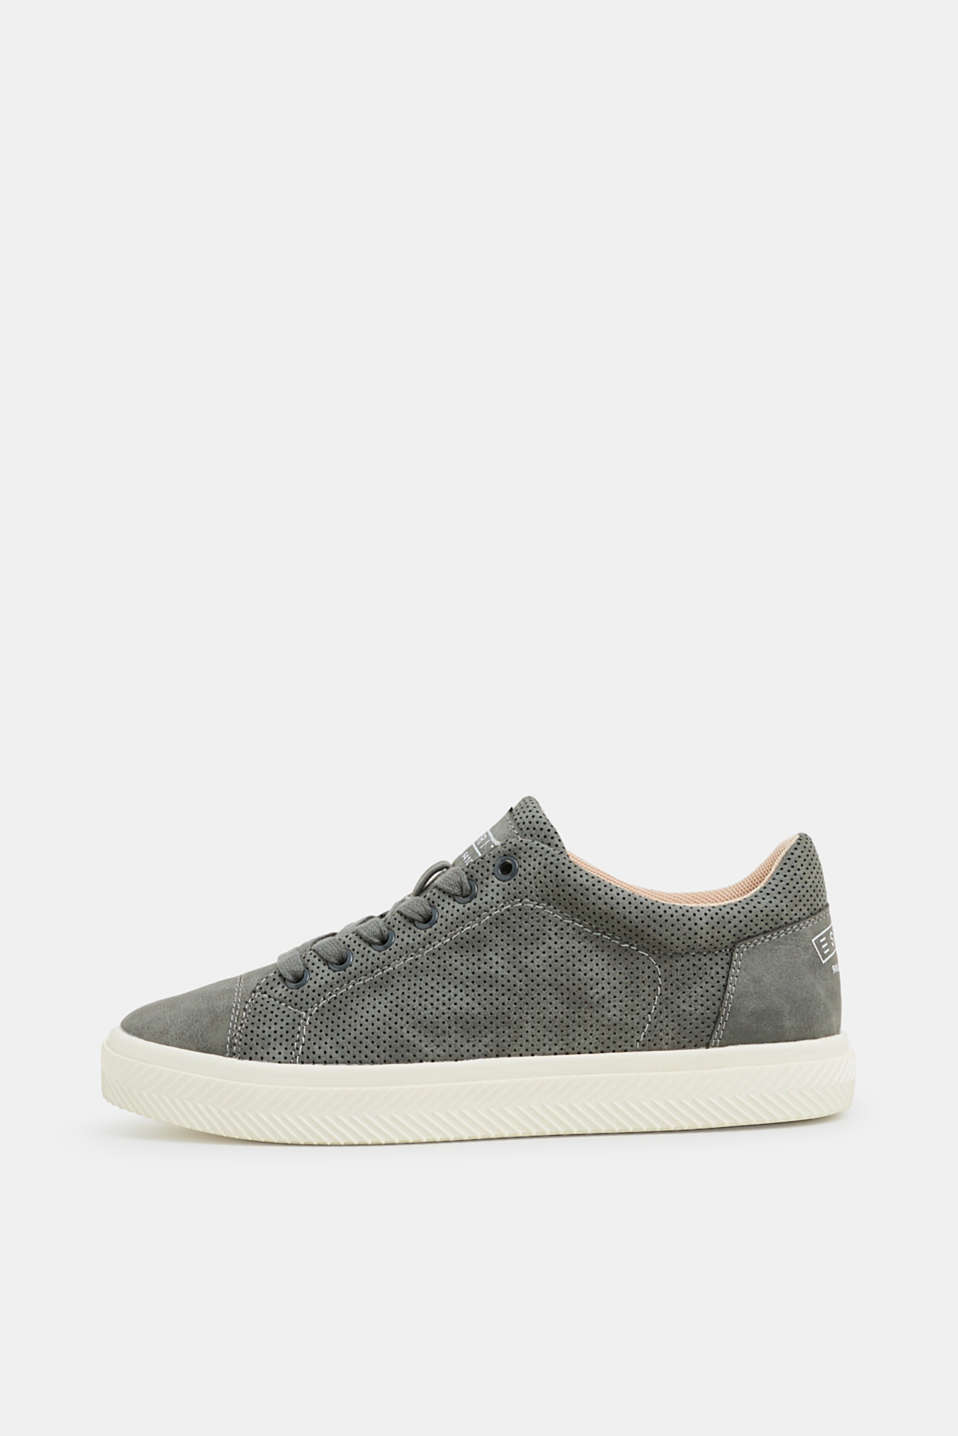 Esprit - Sneakers traforate in similpelle nabuk